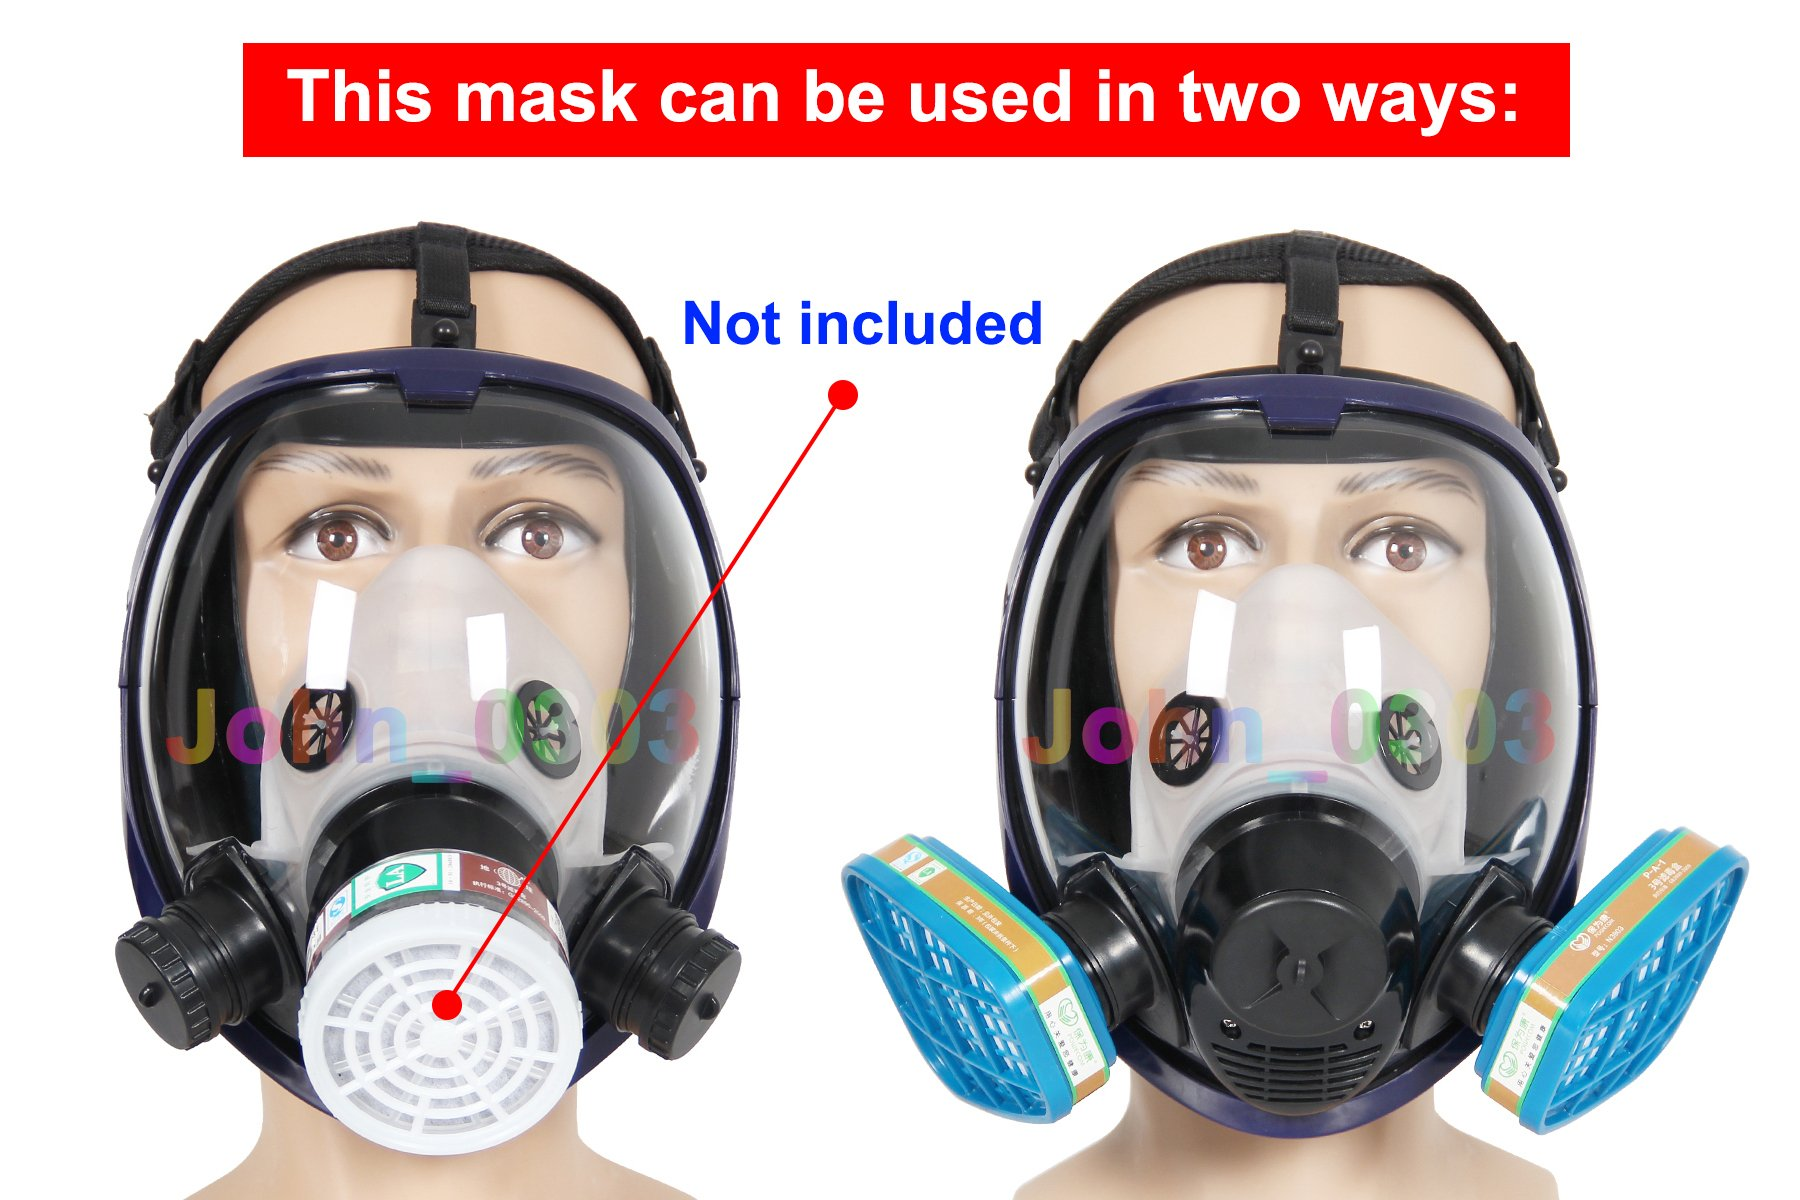 Complete Suit Trudsafe 6800 Painting Spraying Full Face Gas Chemical Mask Respirator, Dust Mask, 2 Kinds of Connectors, Good Tightness, Filters Included by Trudsafe (Image #7)